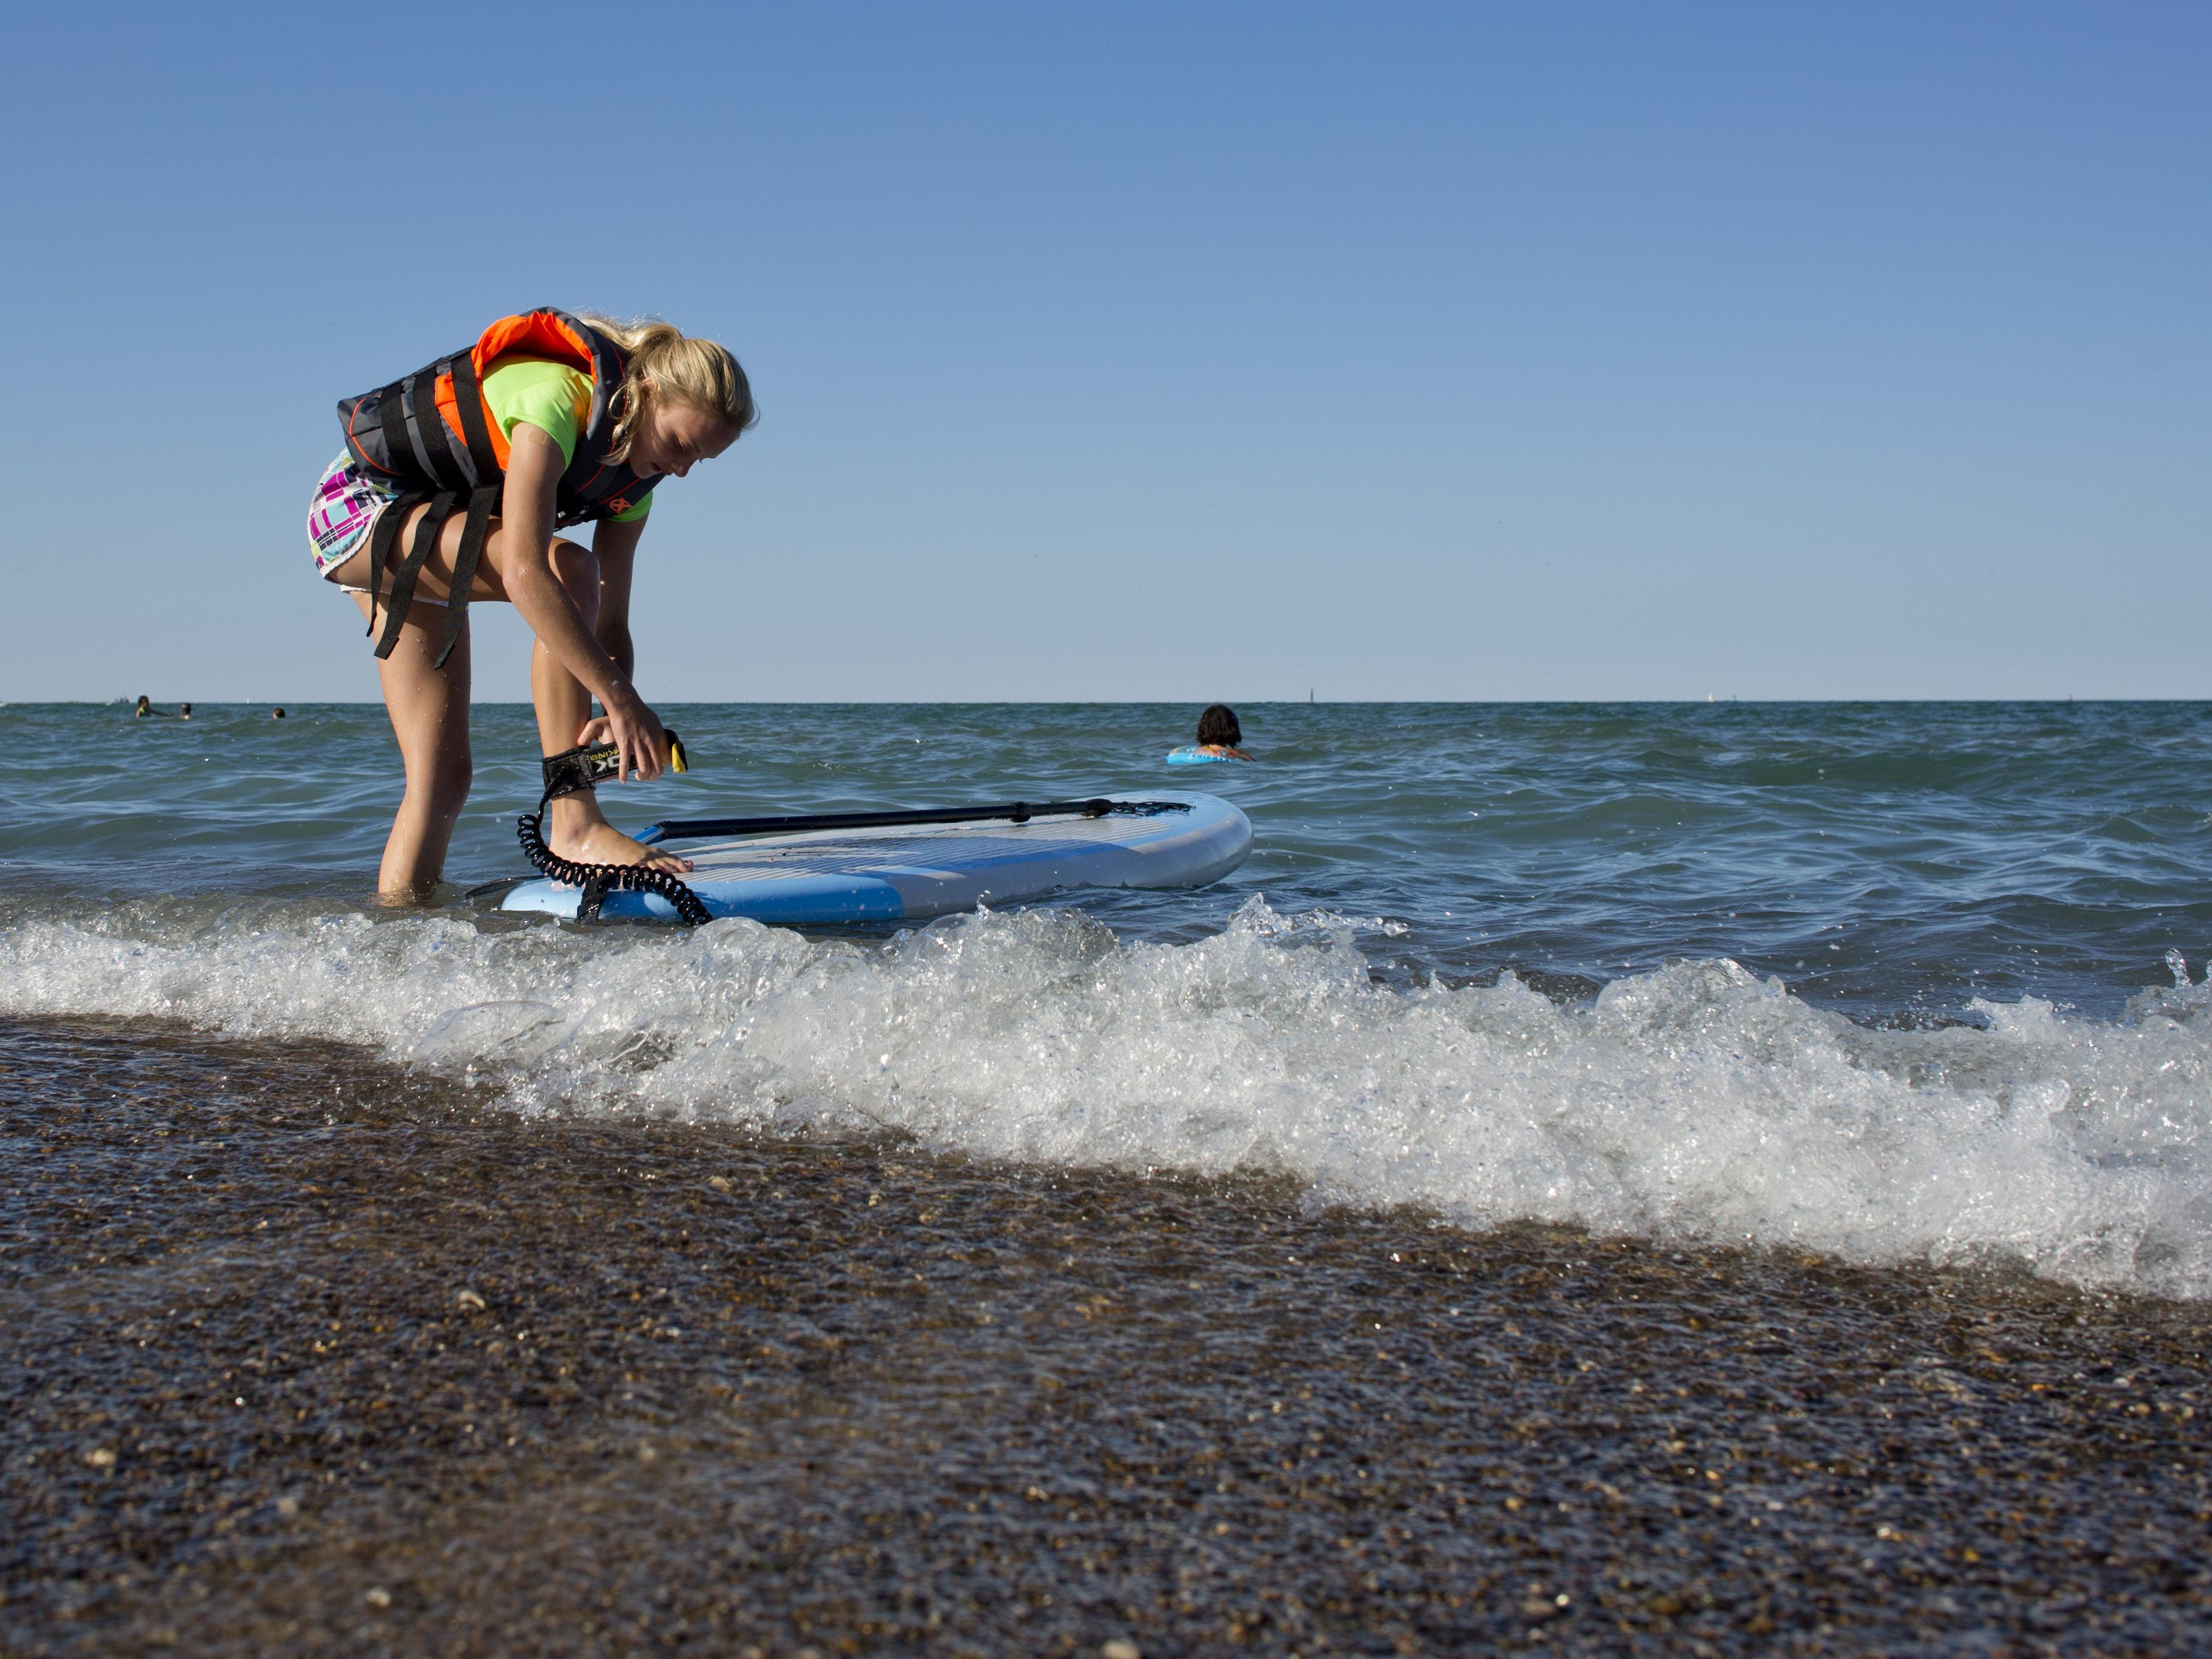 Grace Stein, 13, of Port Huron, secures the board to her leg during a stand up paddle board class Wednesday, July 22, 2015 at Lakeside Beach in Port Huron.